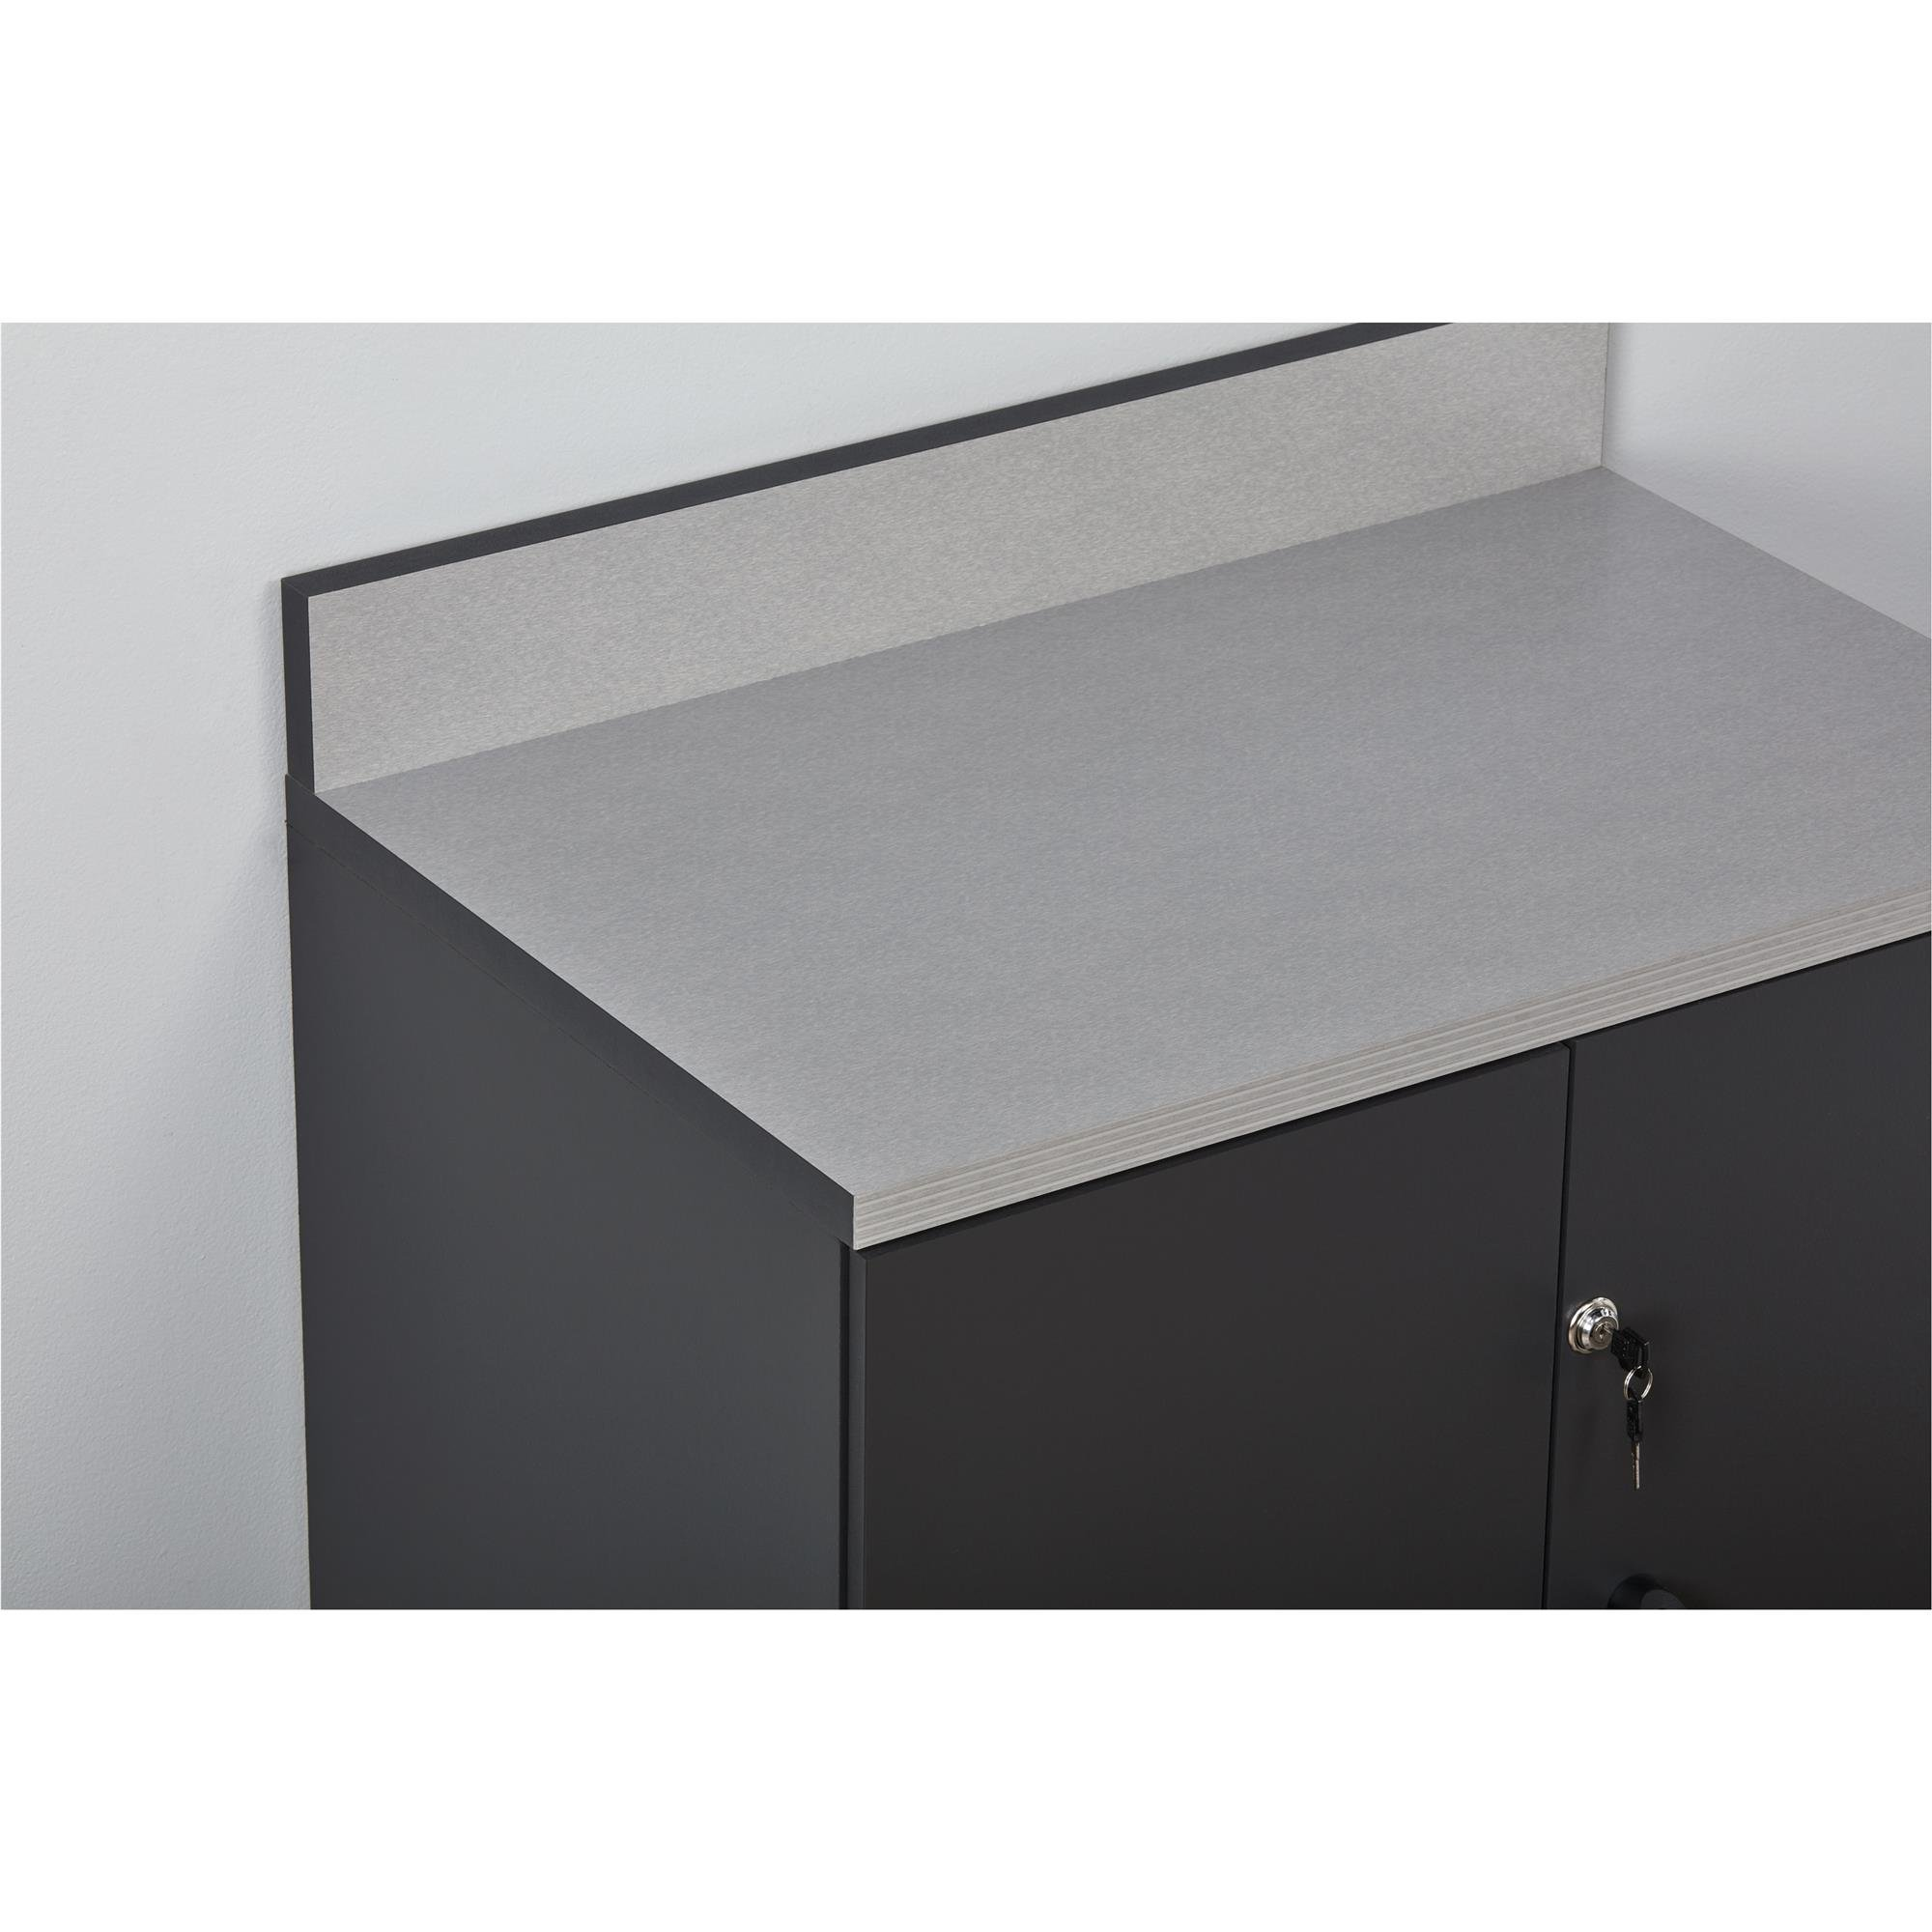 Ameriwood Home Boss -Base Cabinet 2 Door, Charcoal Gray by Ameriwood Home (Image #11)